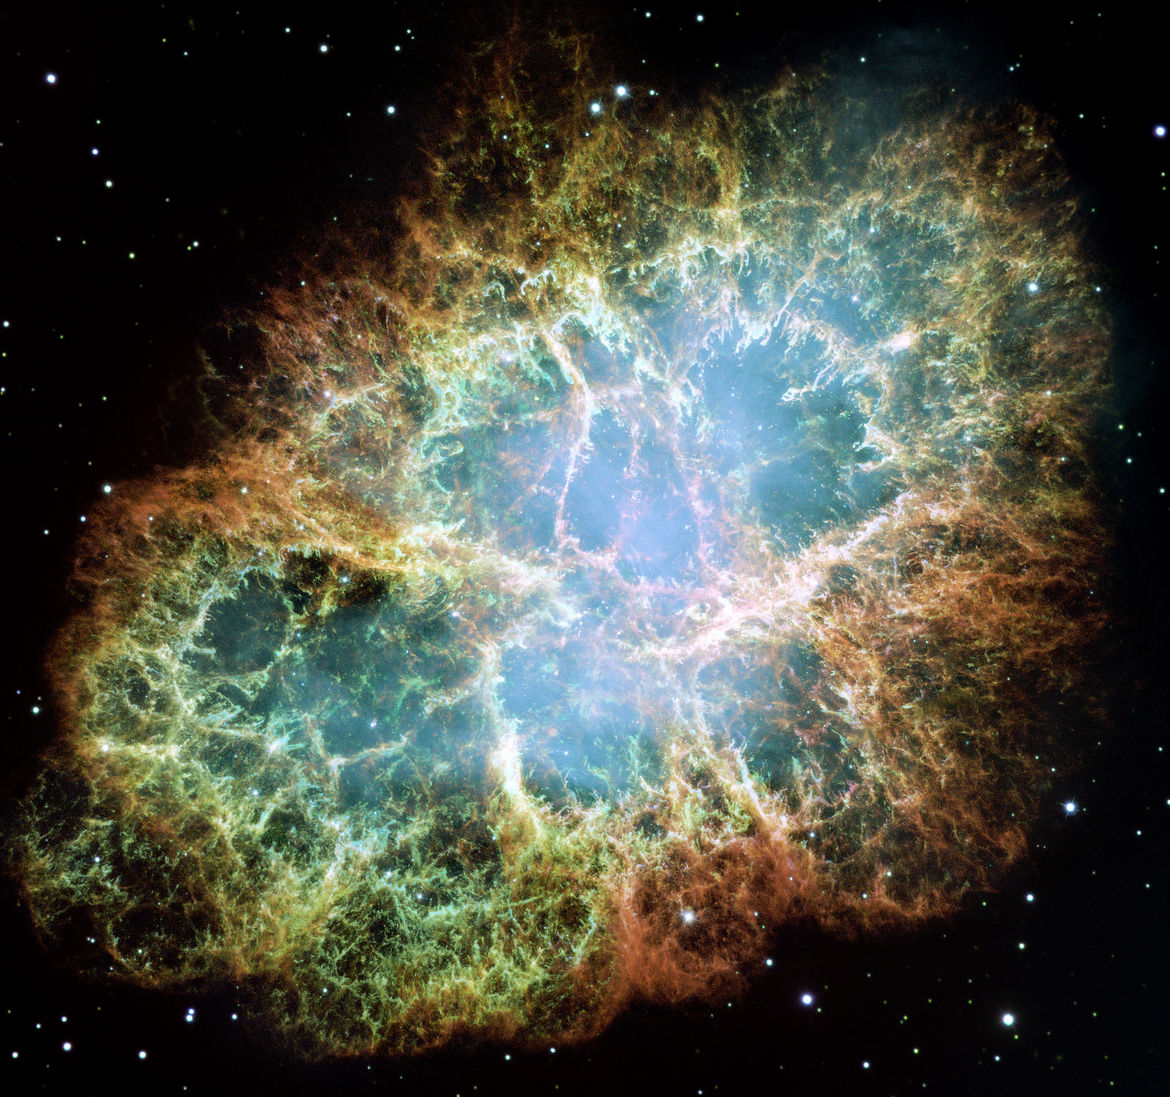 M 1, the Crab Nebula supernova remnant, observed by Hubble Space Telescope. Credit: NASA, ESA, J. Hester and A. Loll (Arizona State University)